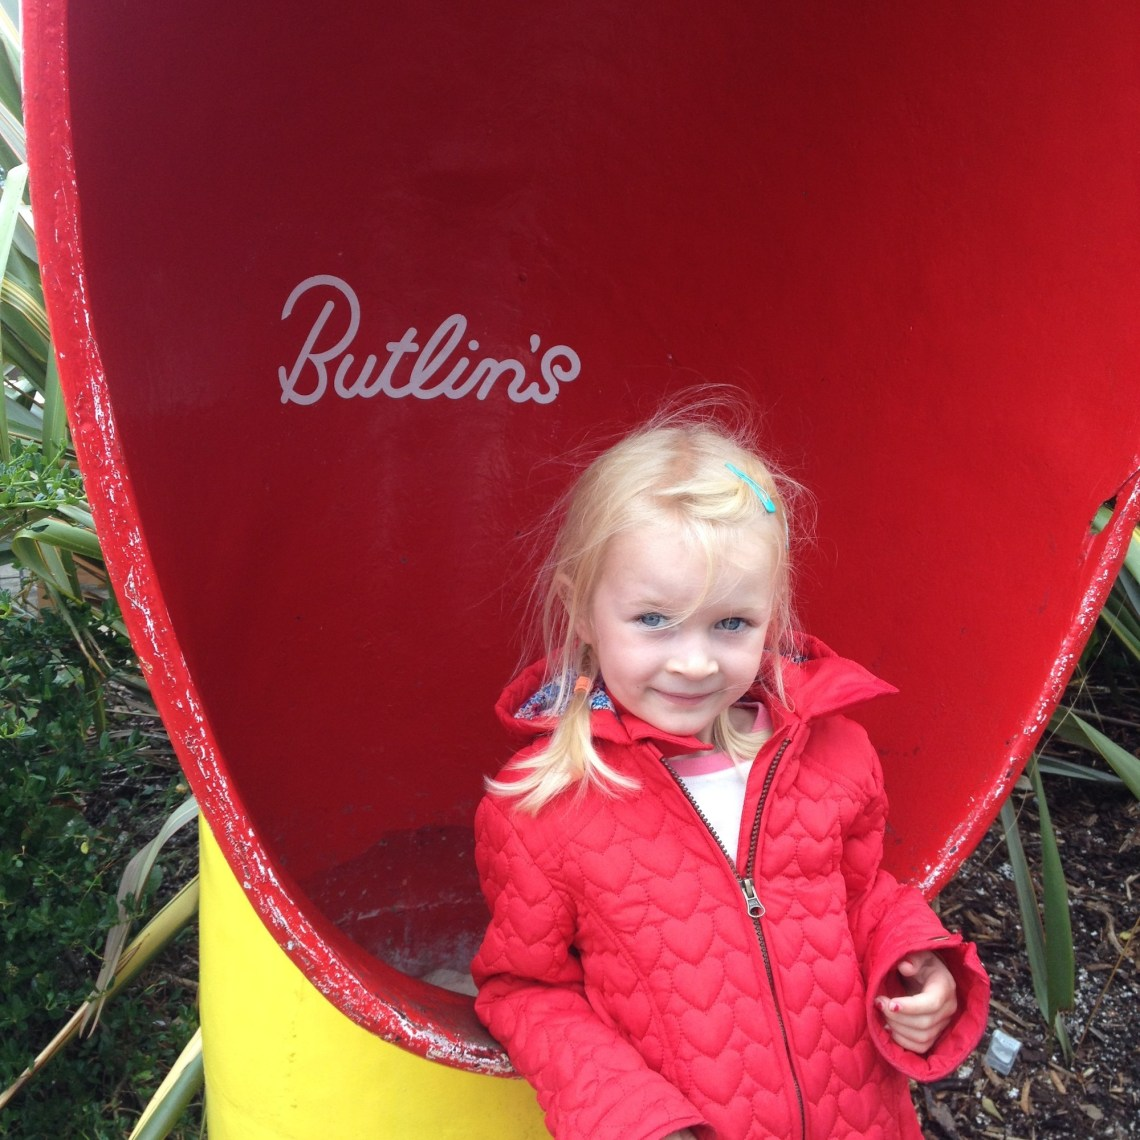 butlins-pic